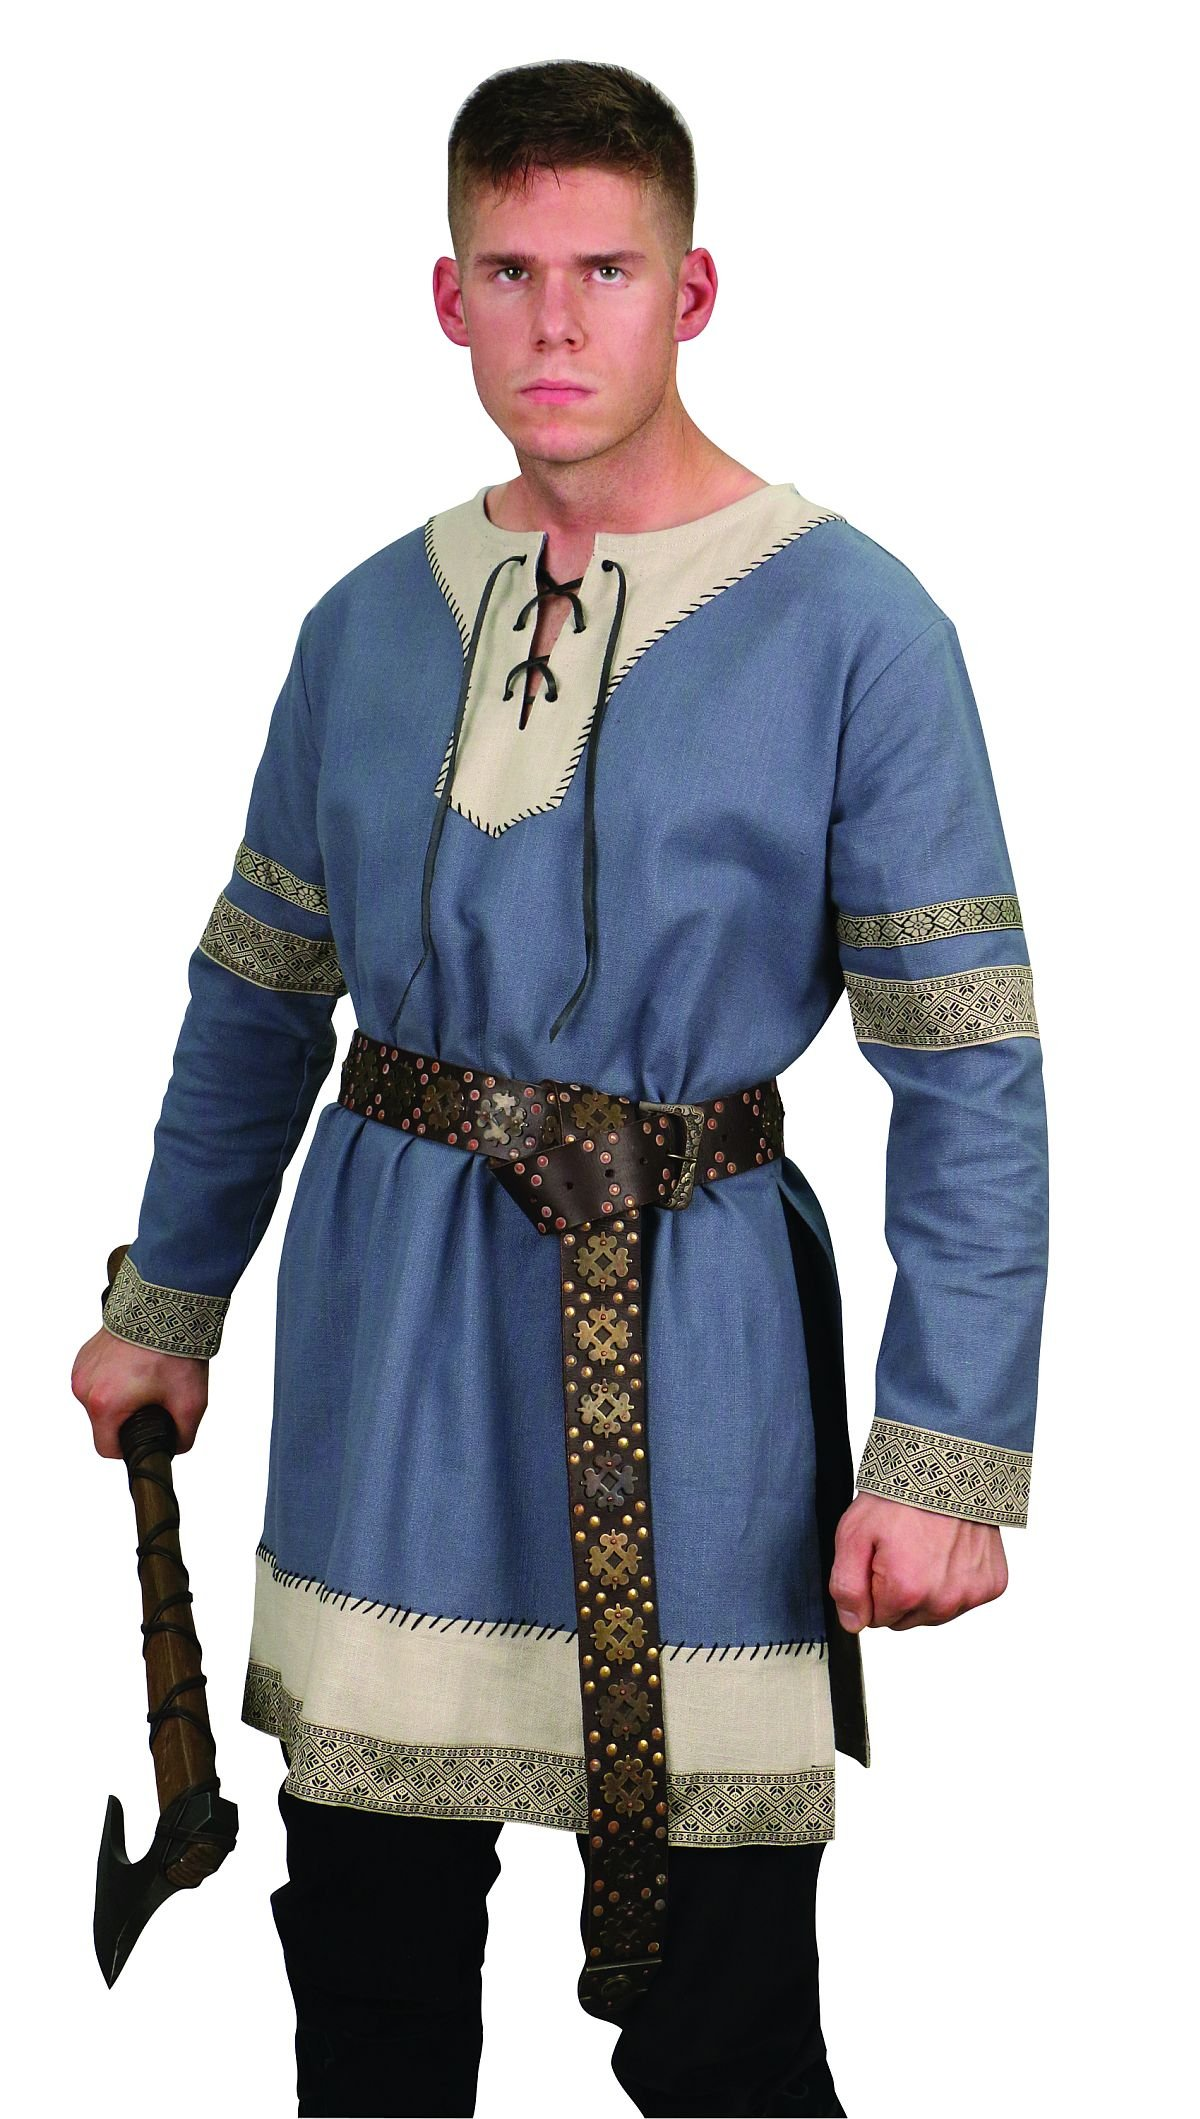 Museum Replicas Viking Noble's Cotton Tunic Medieval Men's Dark Ages Halloween Costume (S/M, Steel Blue) by Museum Replicas (Image #1)